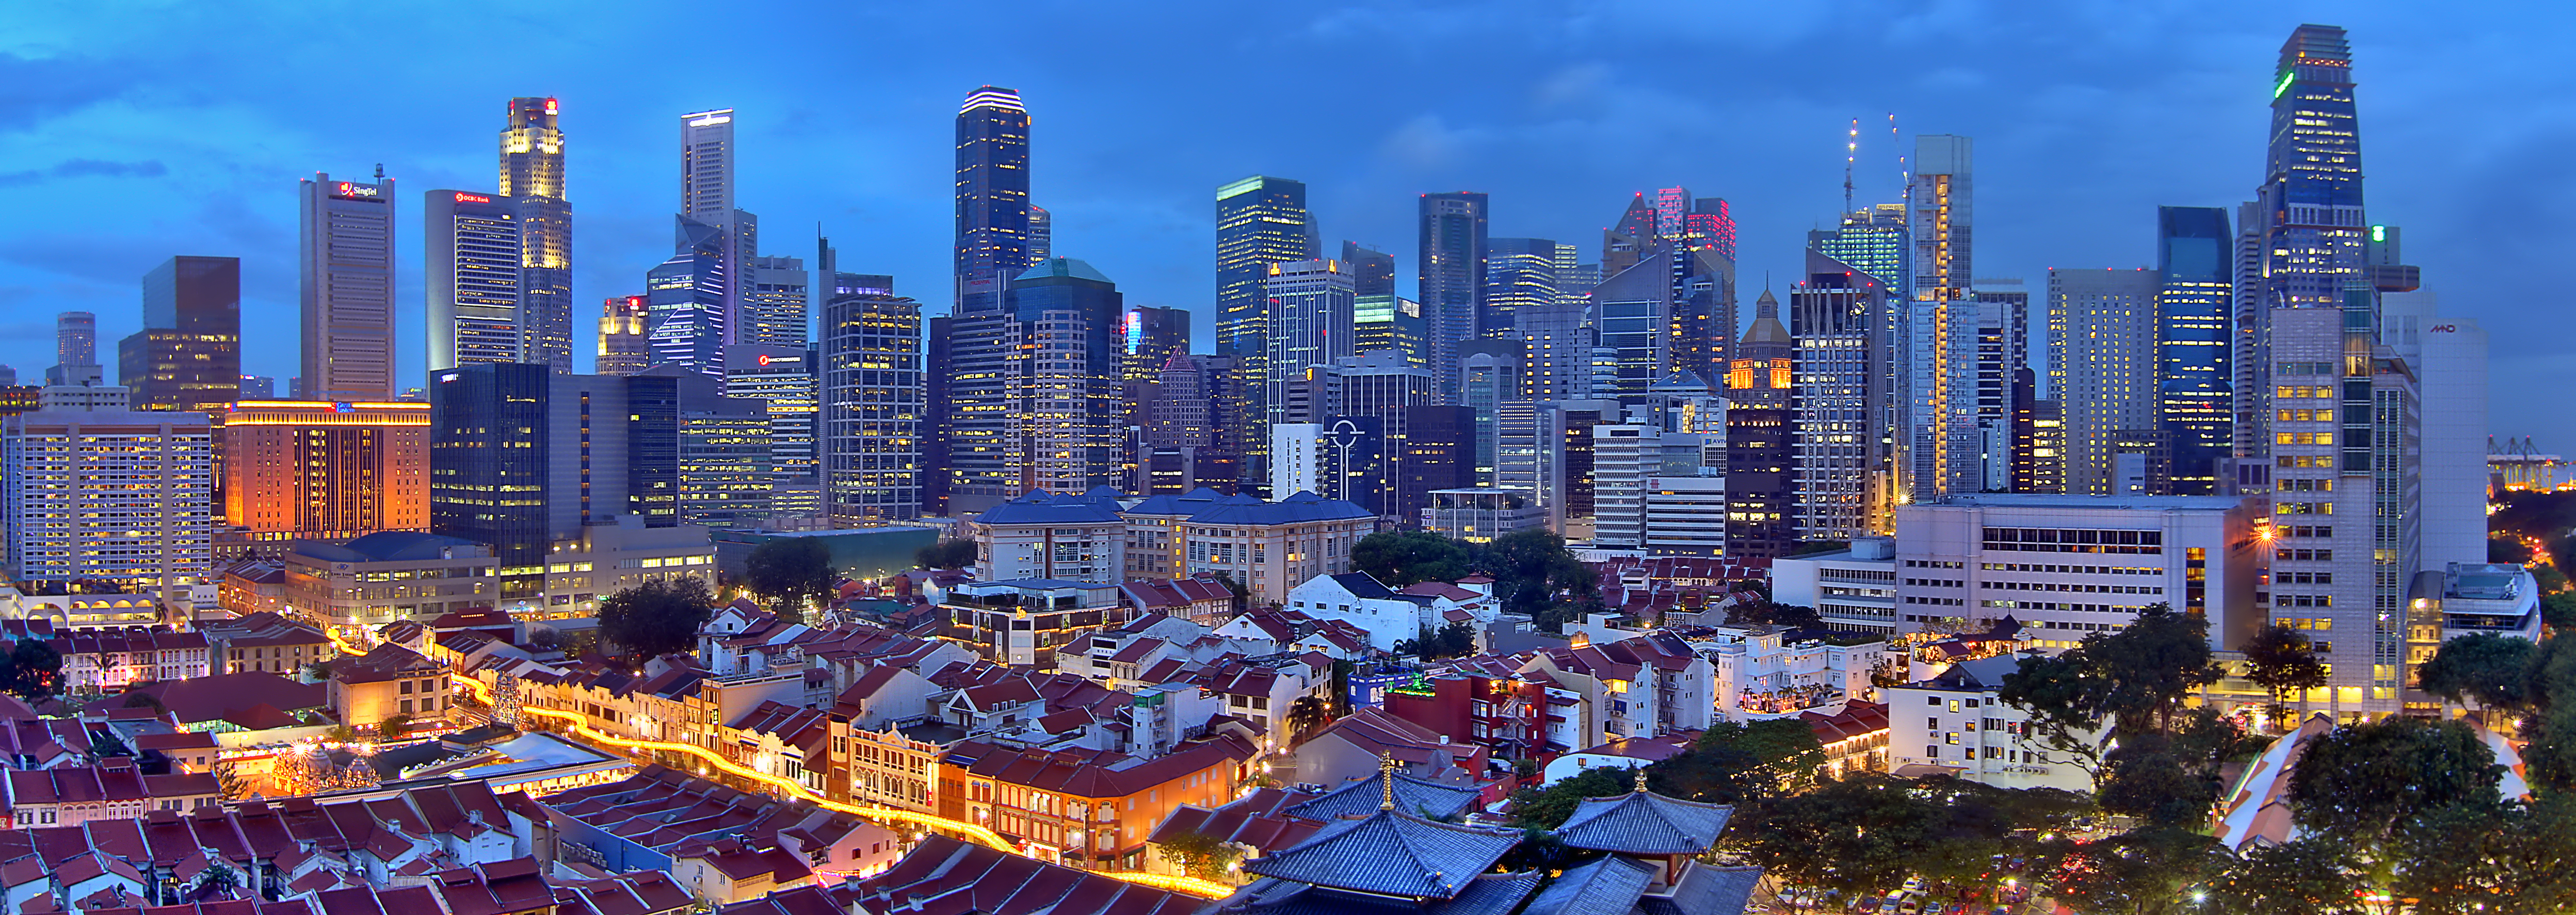 Singapore_skyline_from_Chinatown_at_blue_hour_(8463911183)